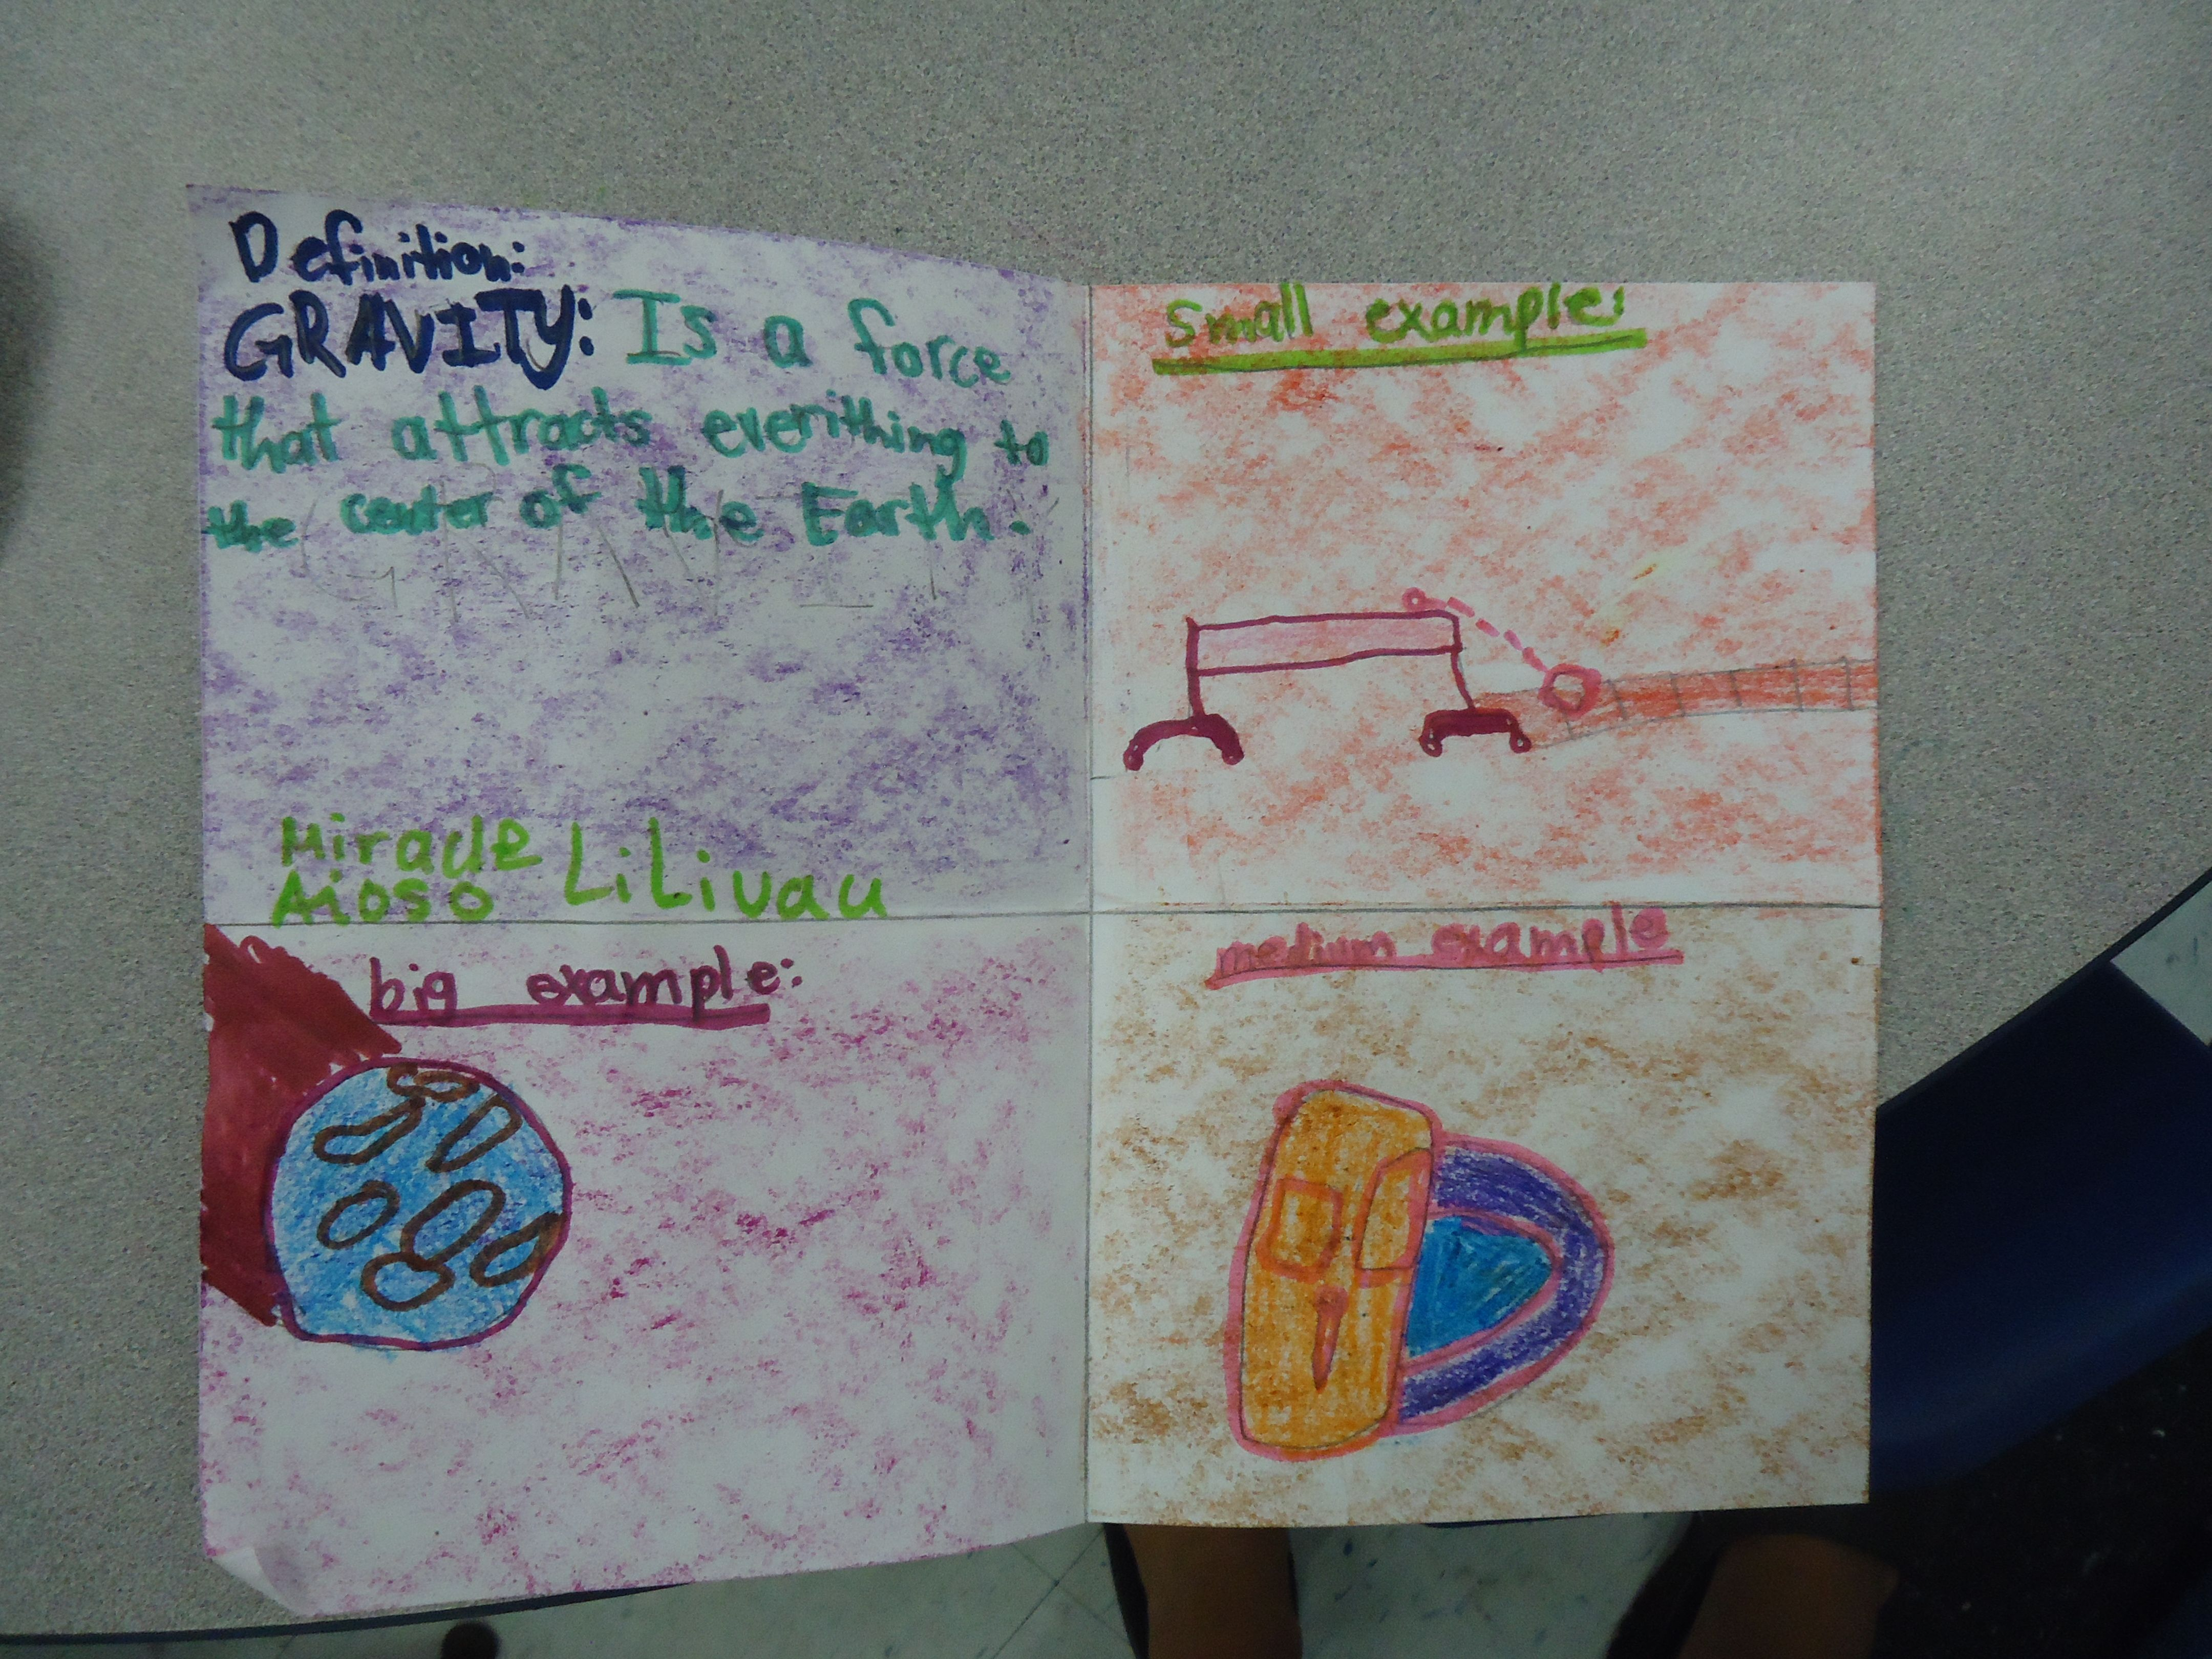 Kids Activity About Examples Of Gravity